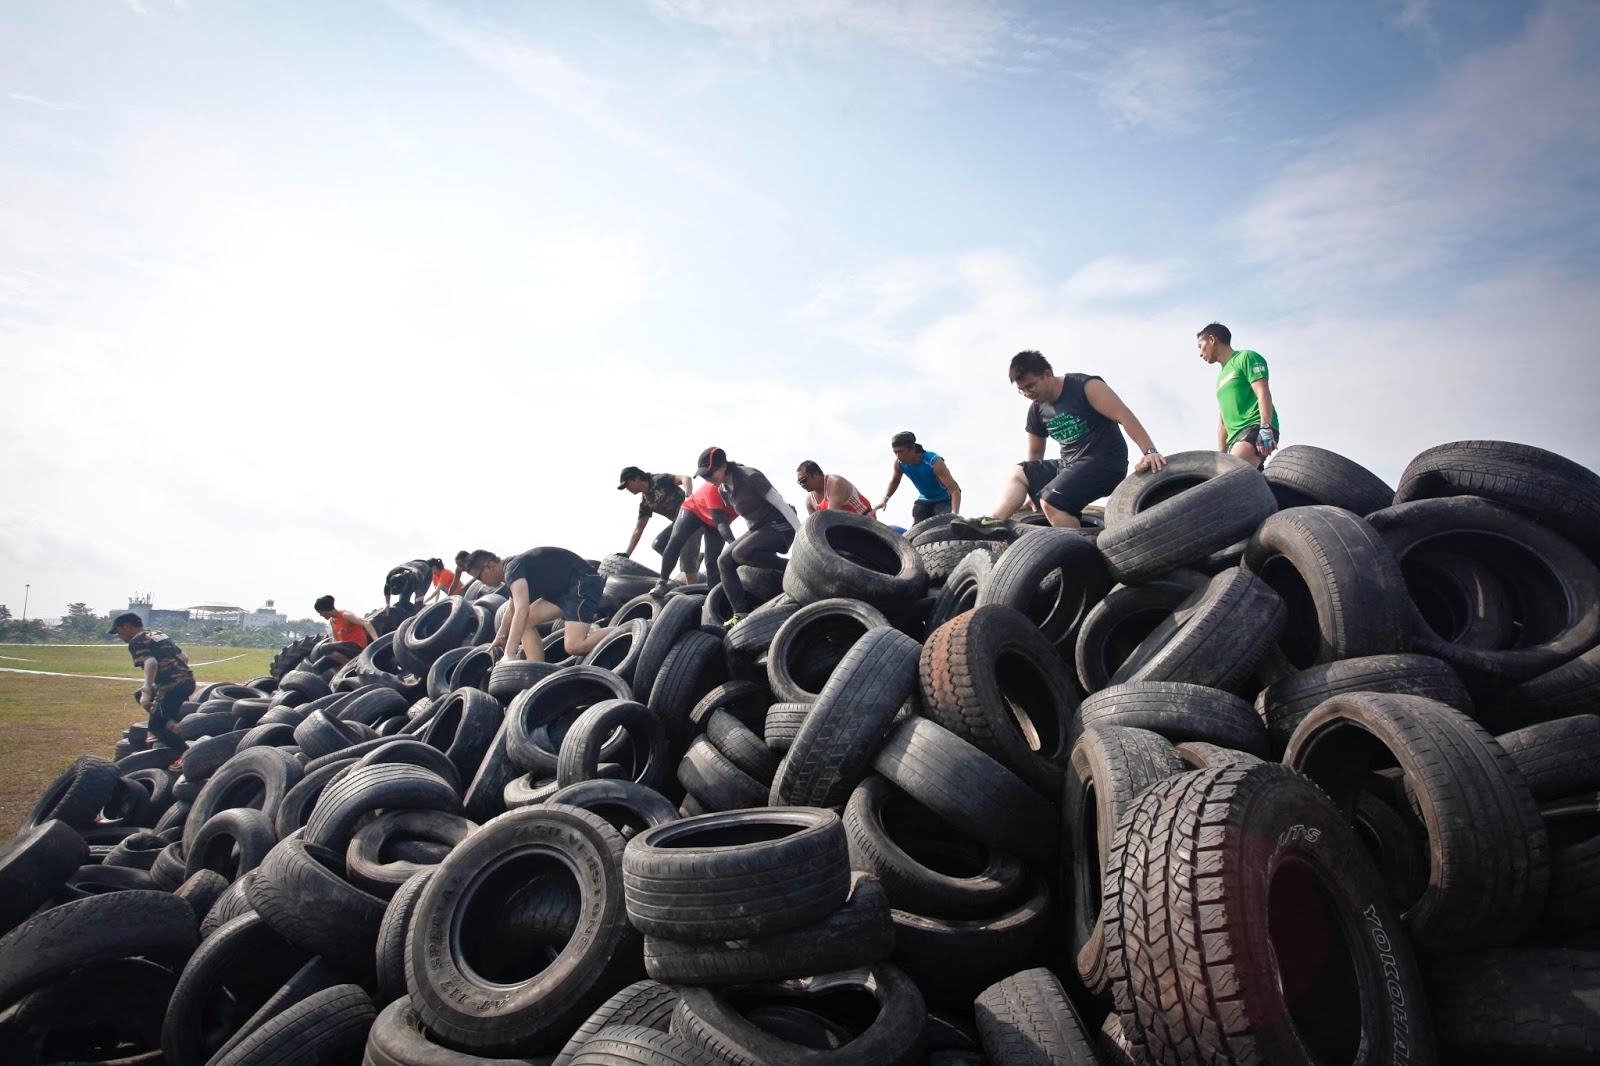 Picture 11 - Viper Challenge participants at the giant tire mountain